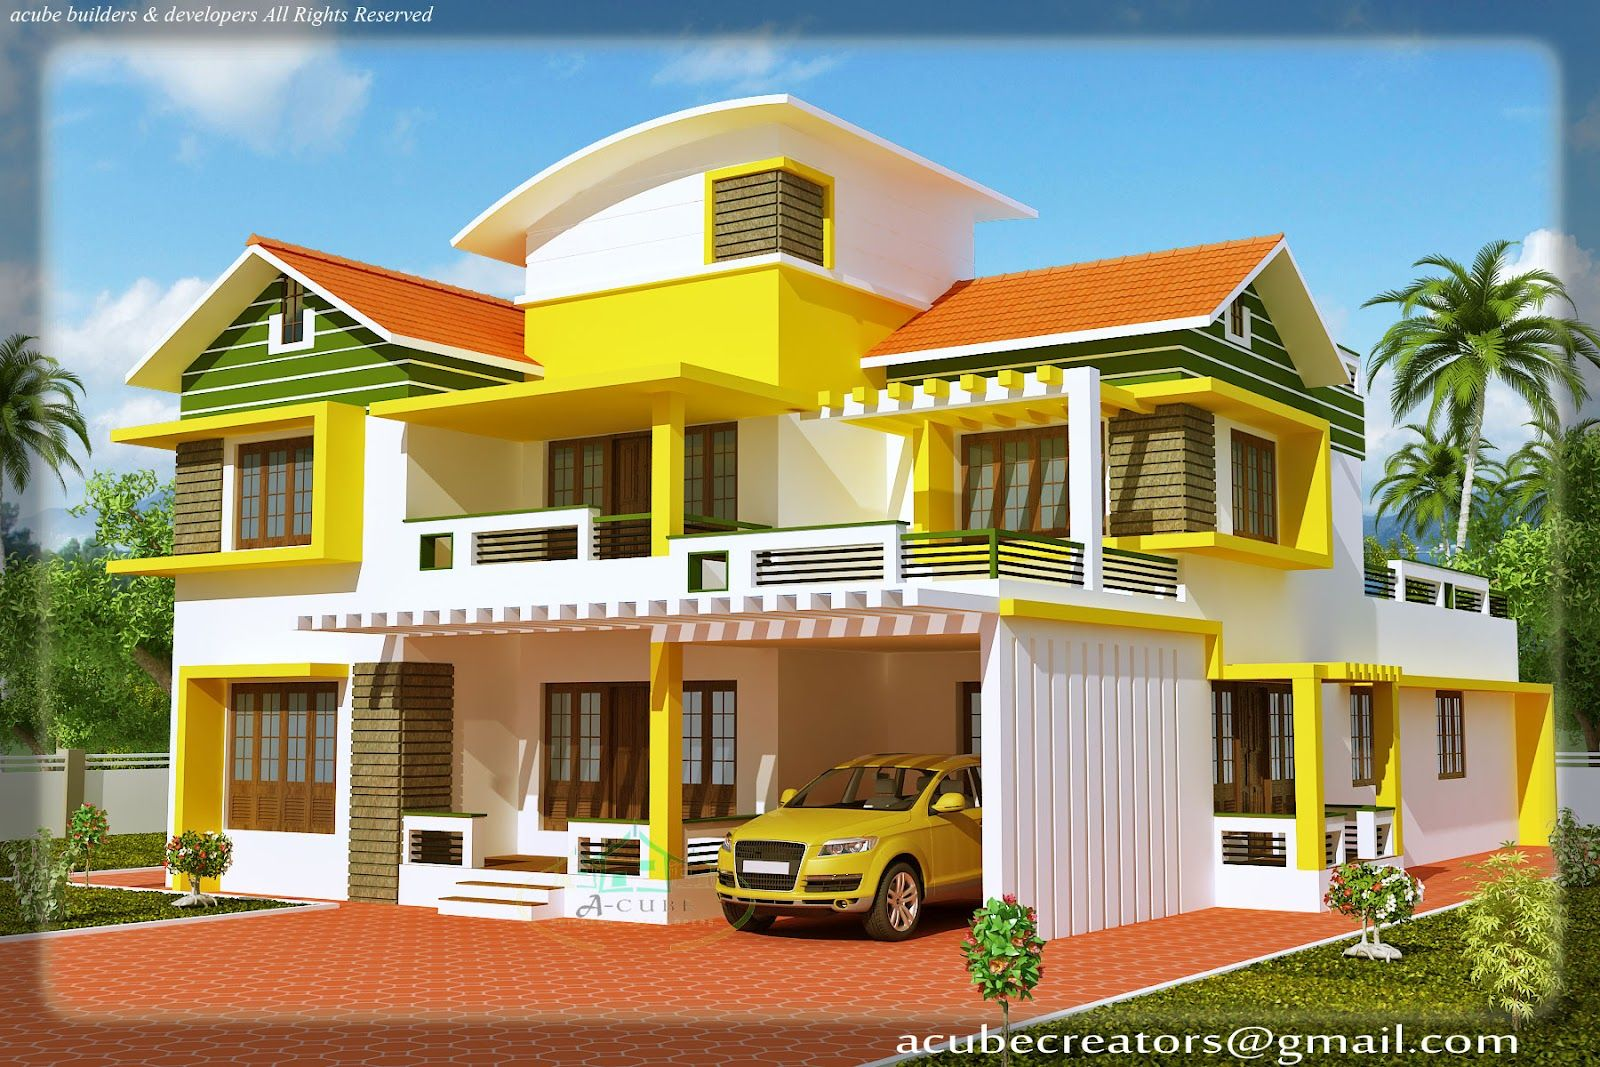 Houses pesquisa do google houses pinterest house Building model homes